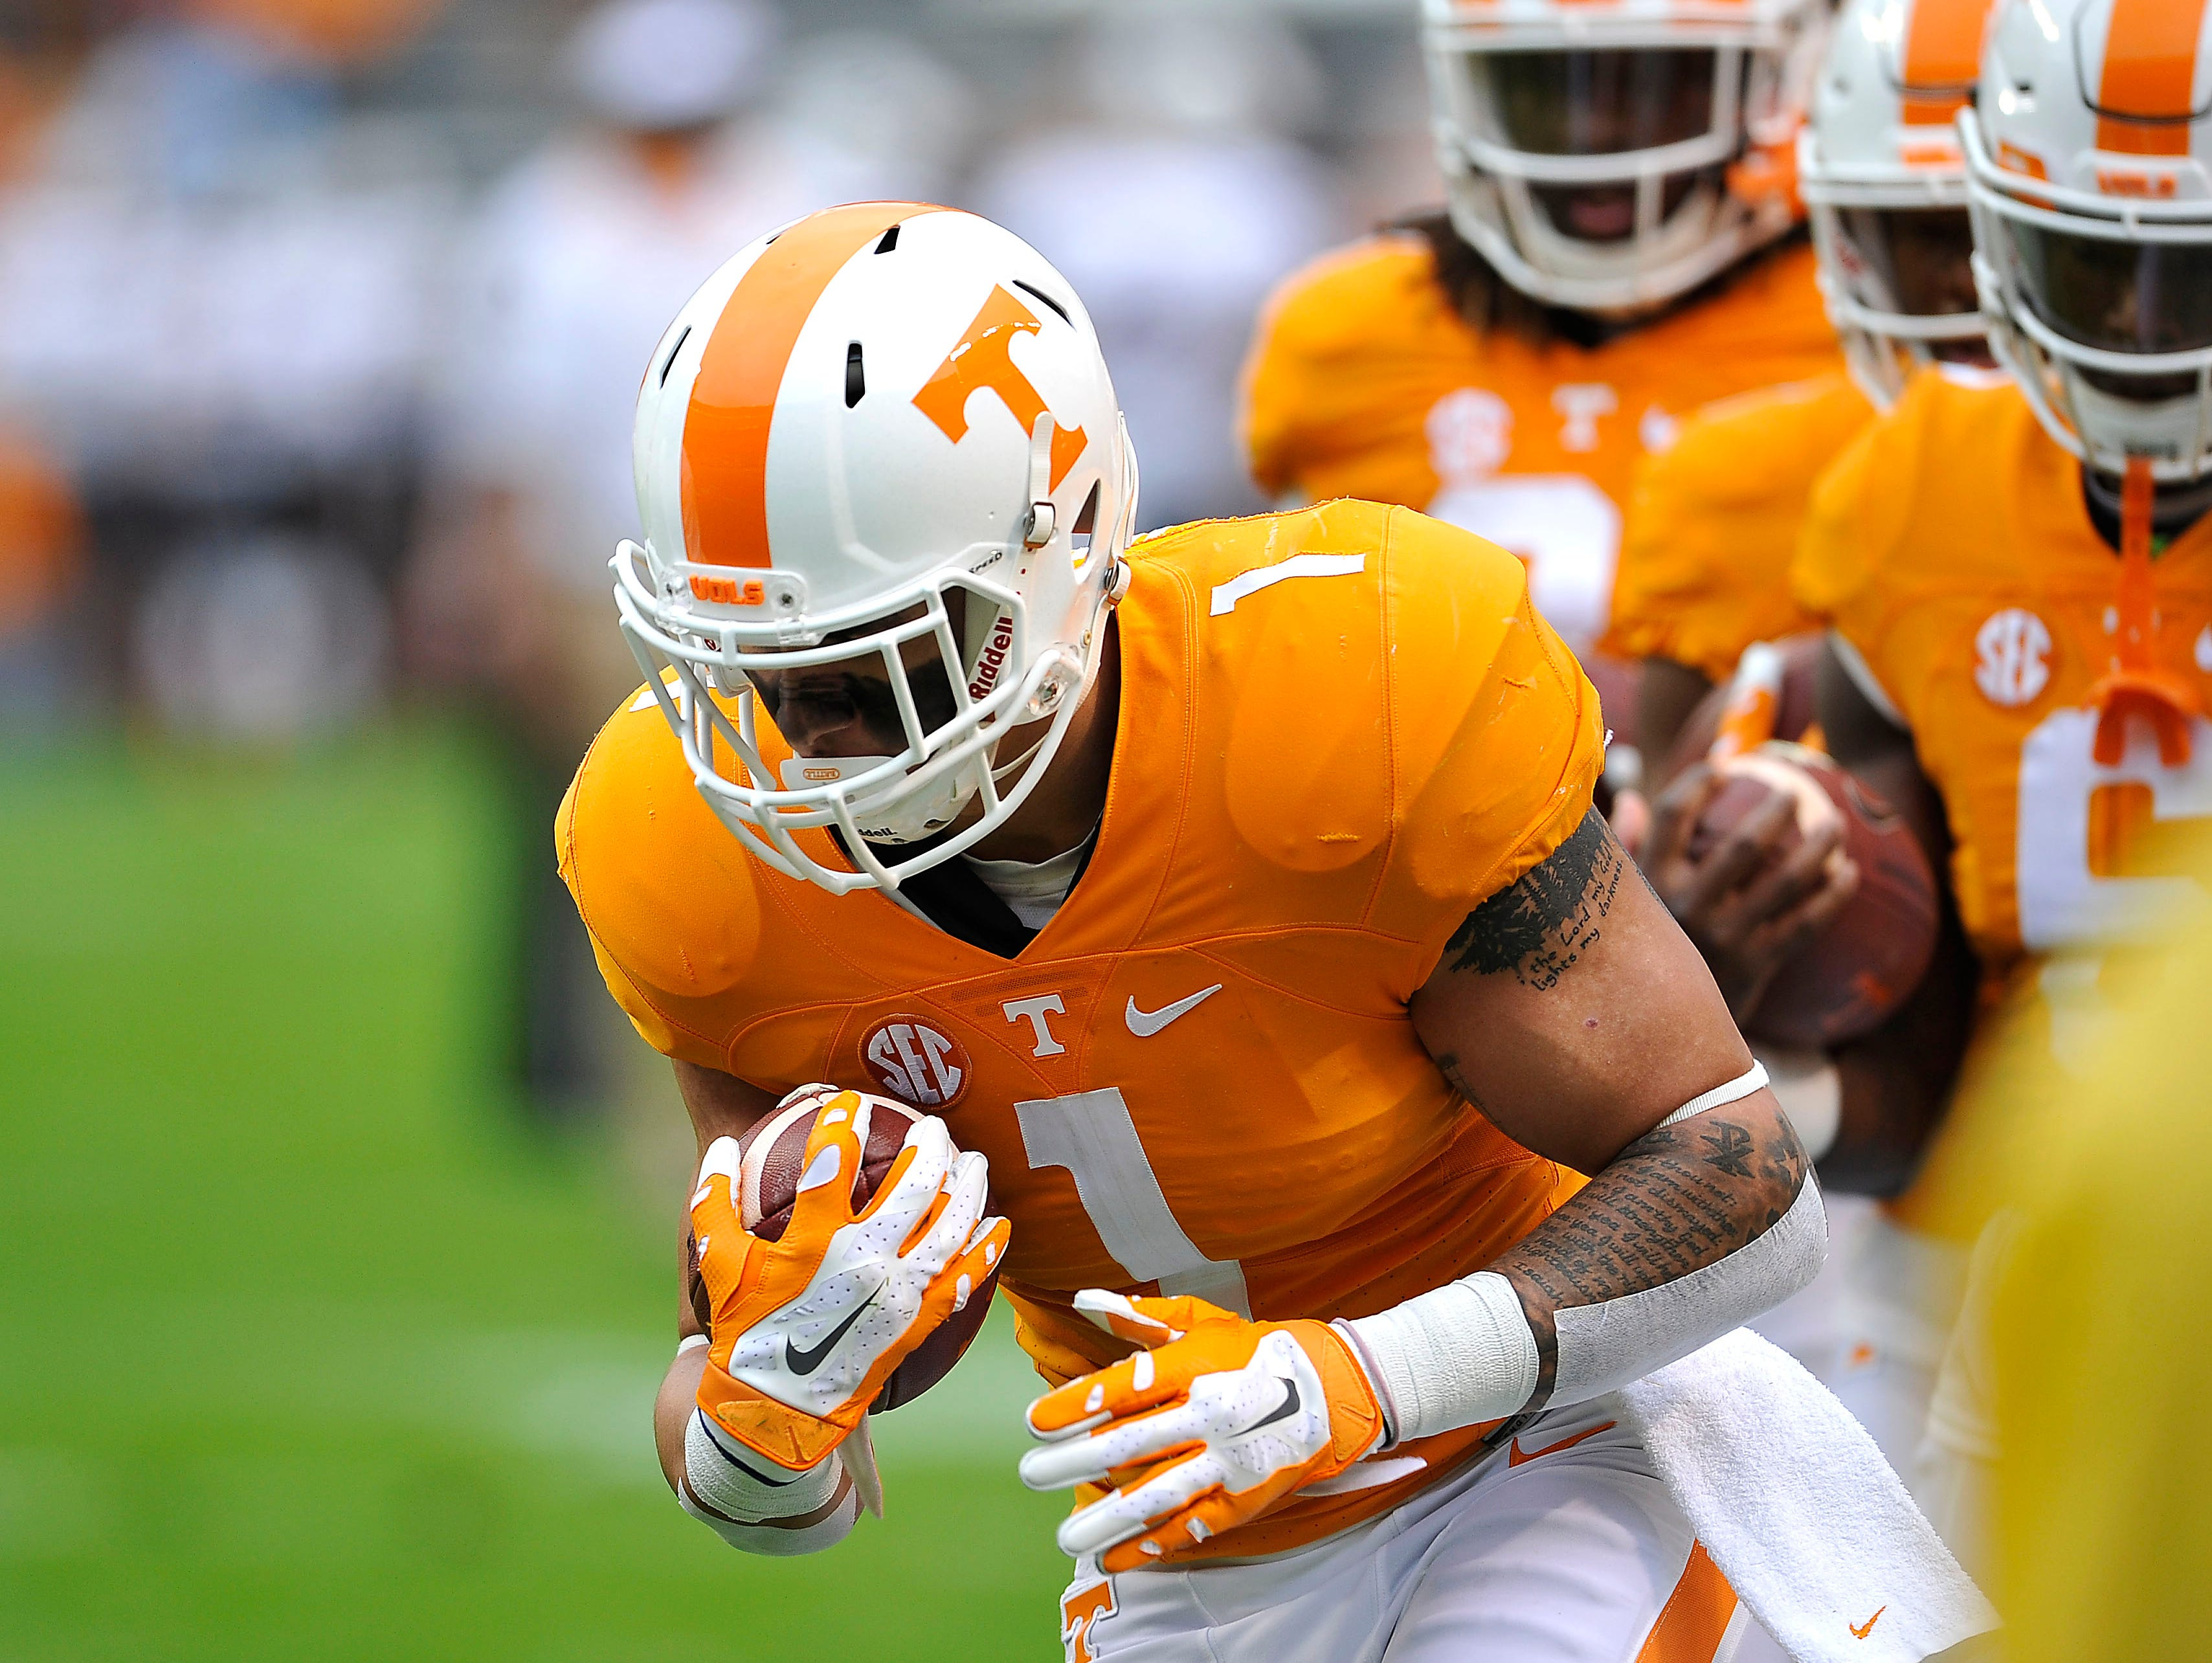 Tennessee running back Jalen Hurd (1) warms up with his teammates before the Vols play South Carolina on Nov. 7, 2015.